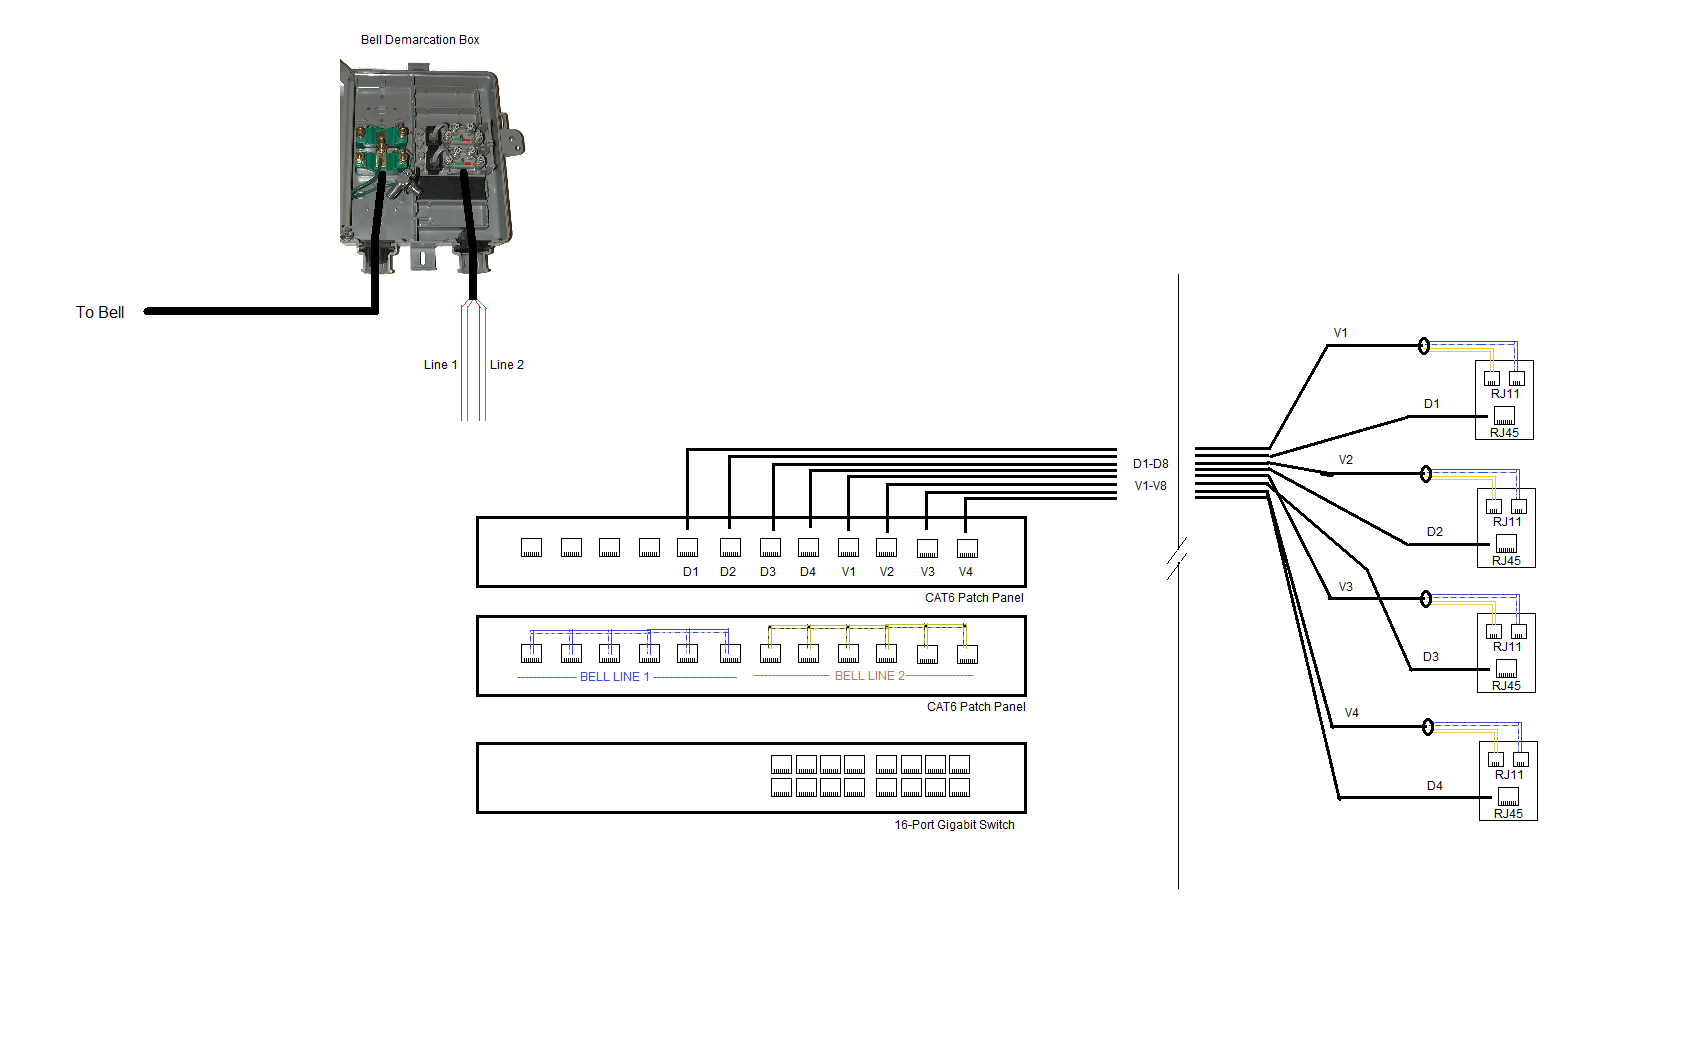 Wiring Telephone And Data On The Same Patch Panel Cat6 Plan For